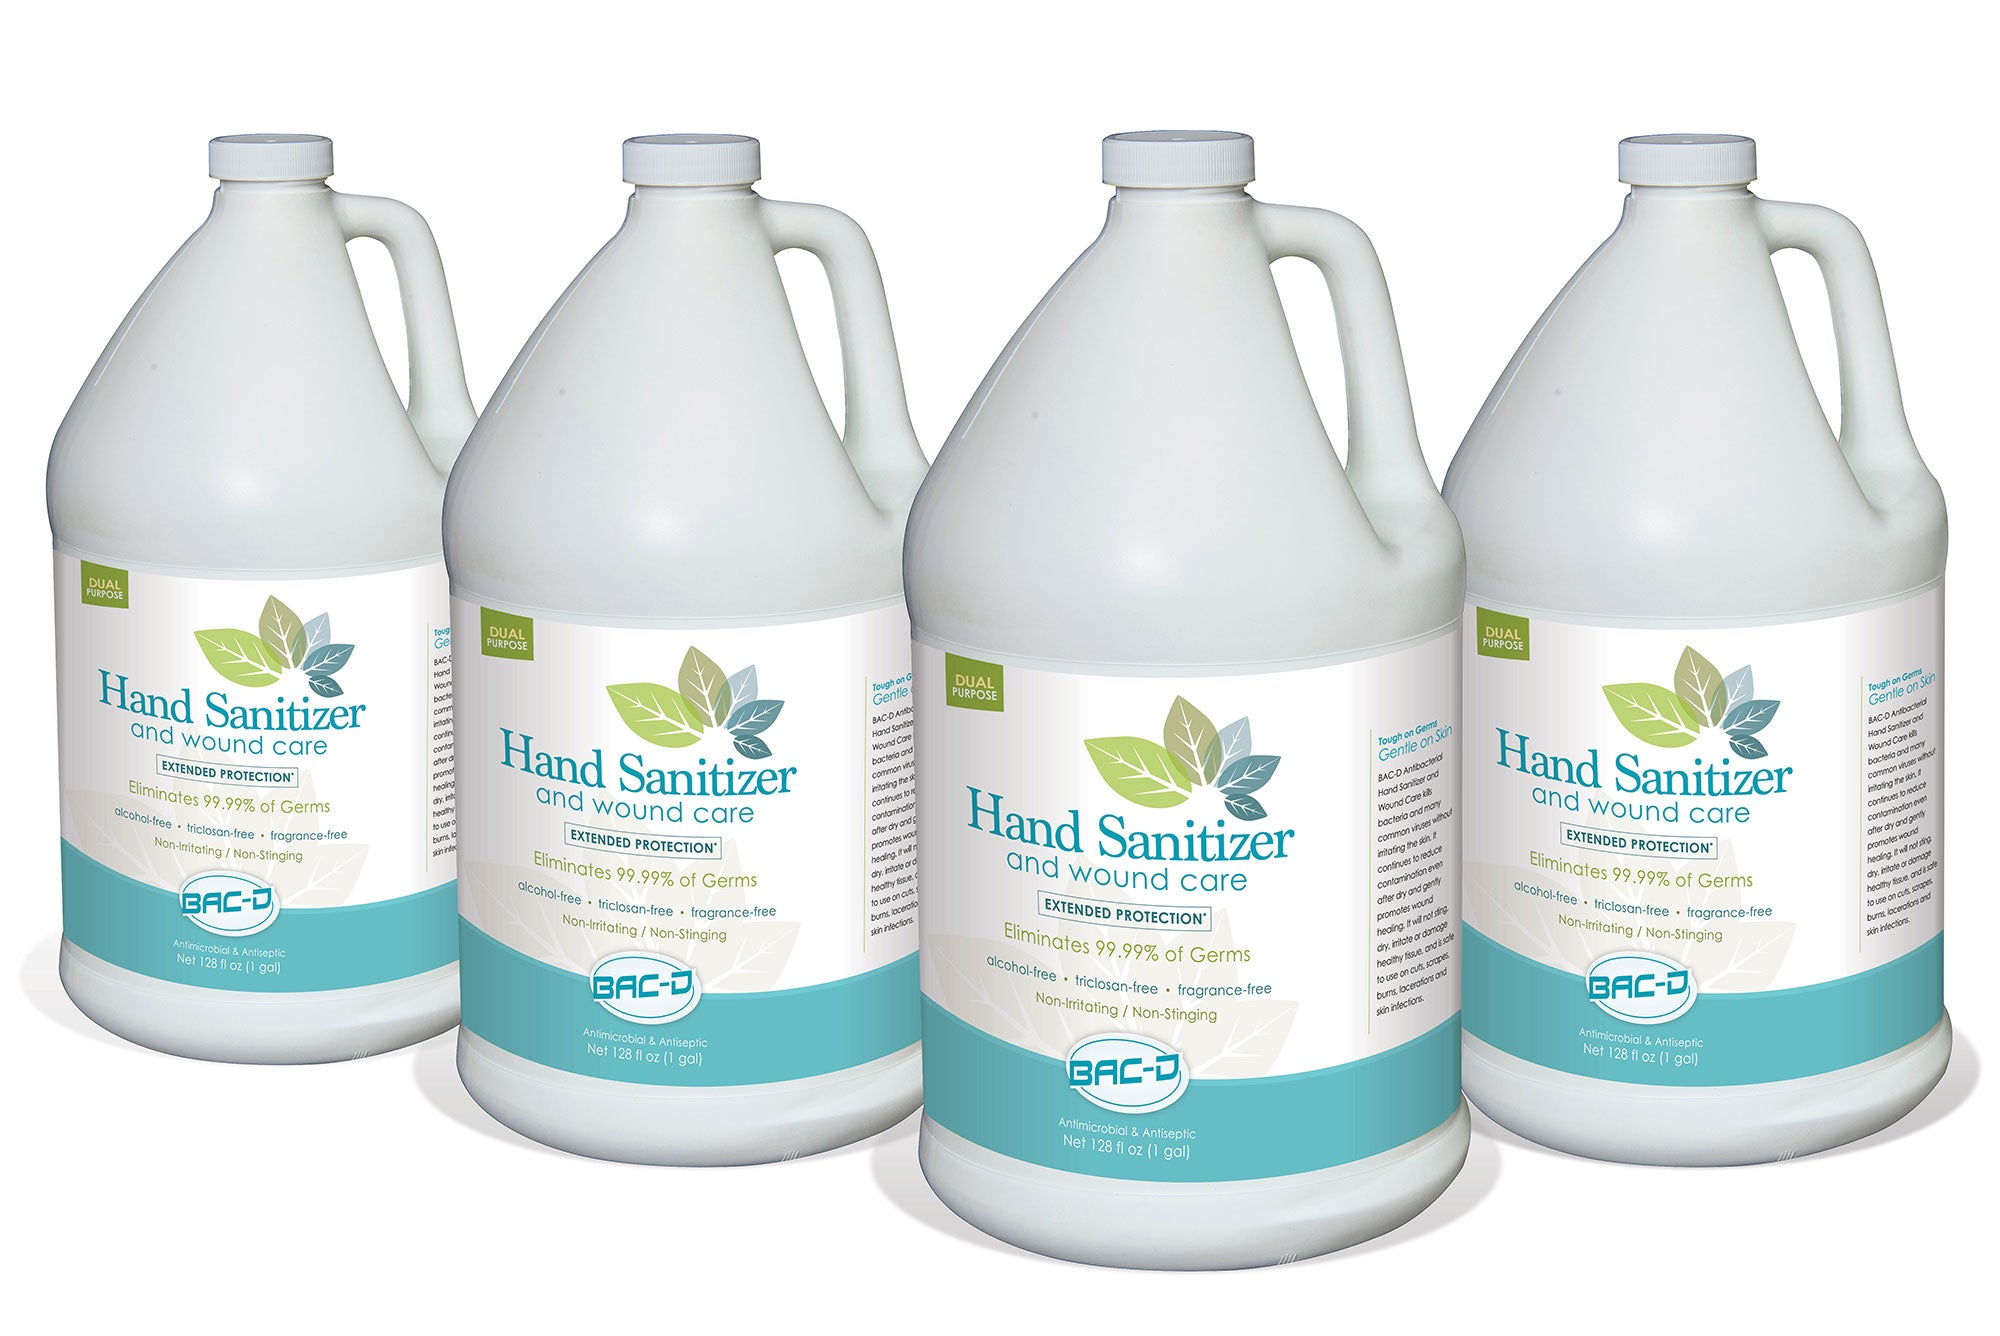 BAC-D® Alcohol Free Hand Sanitizer and Wound Care - One Gallon Refill Pack of 4